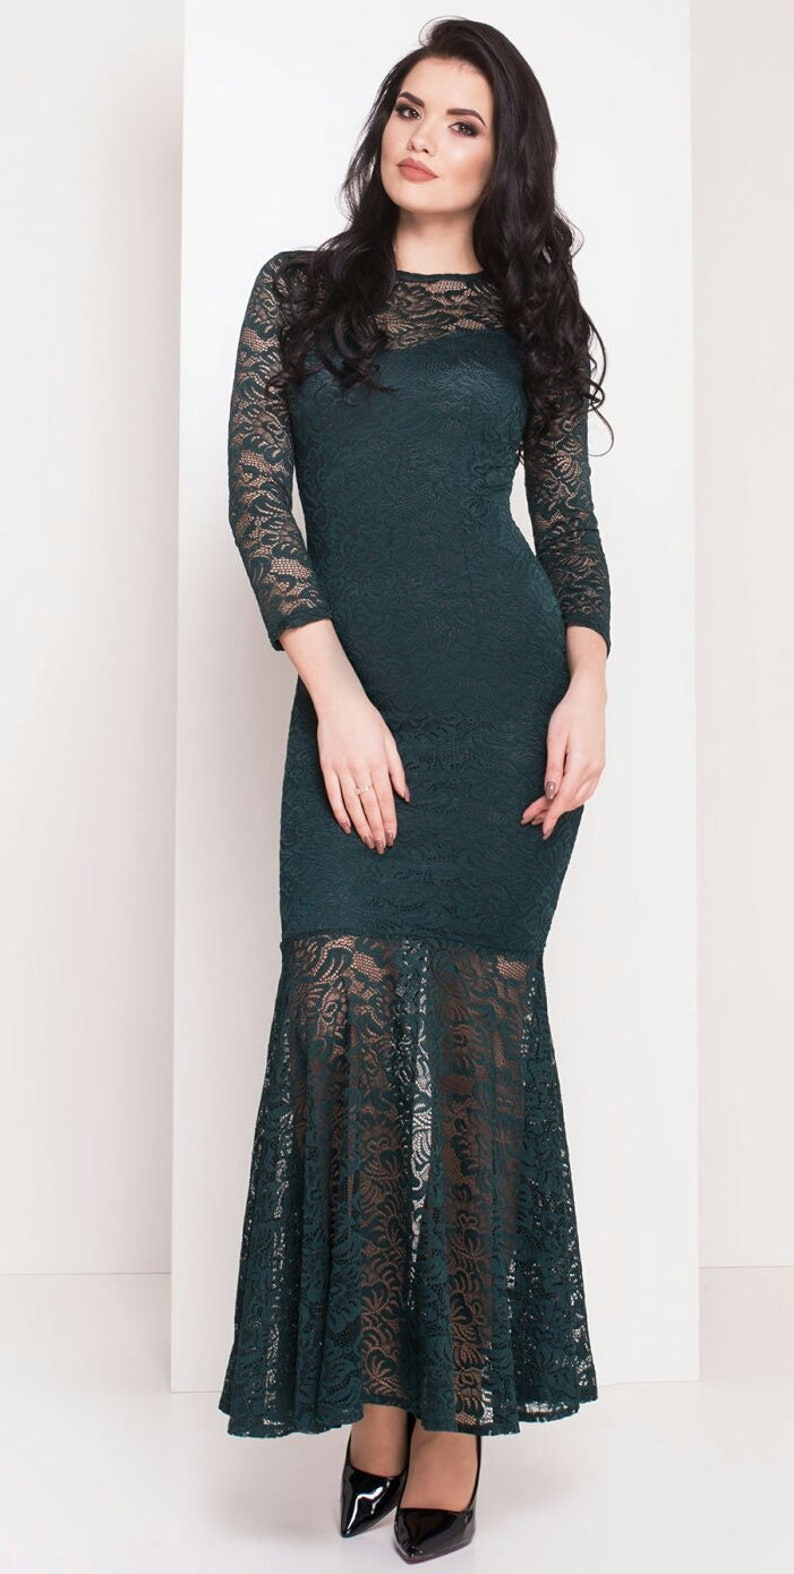 4951aea3e51 Dark green lace dress Dress floor Maxi dress for women Summer